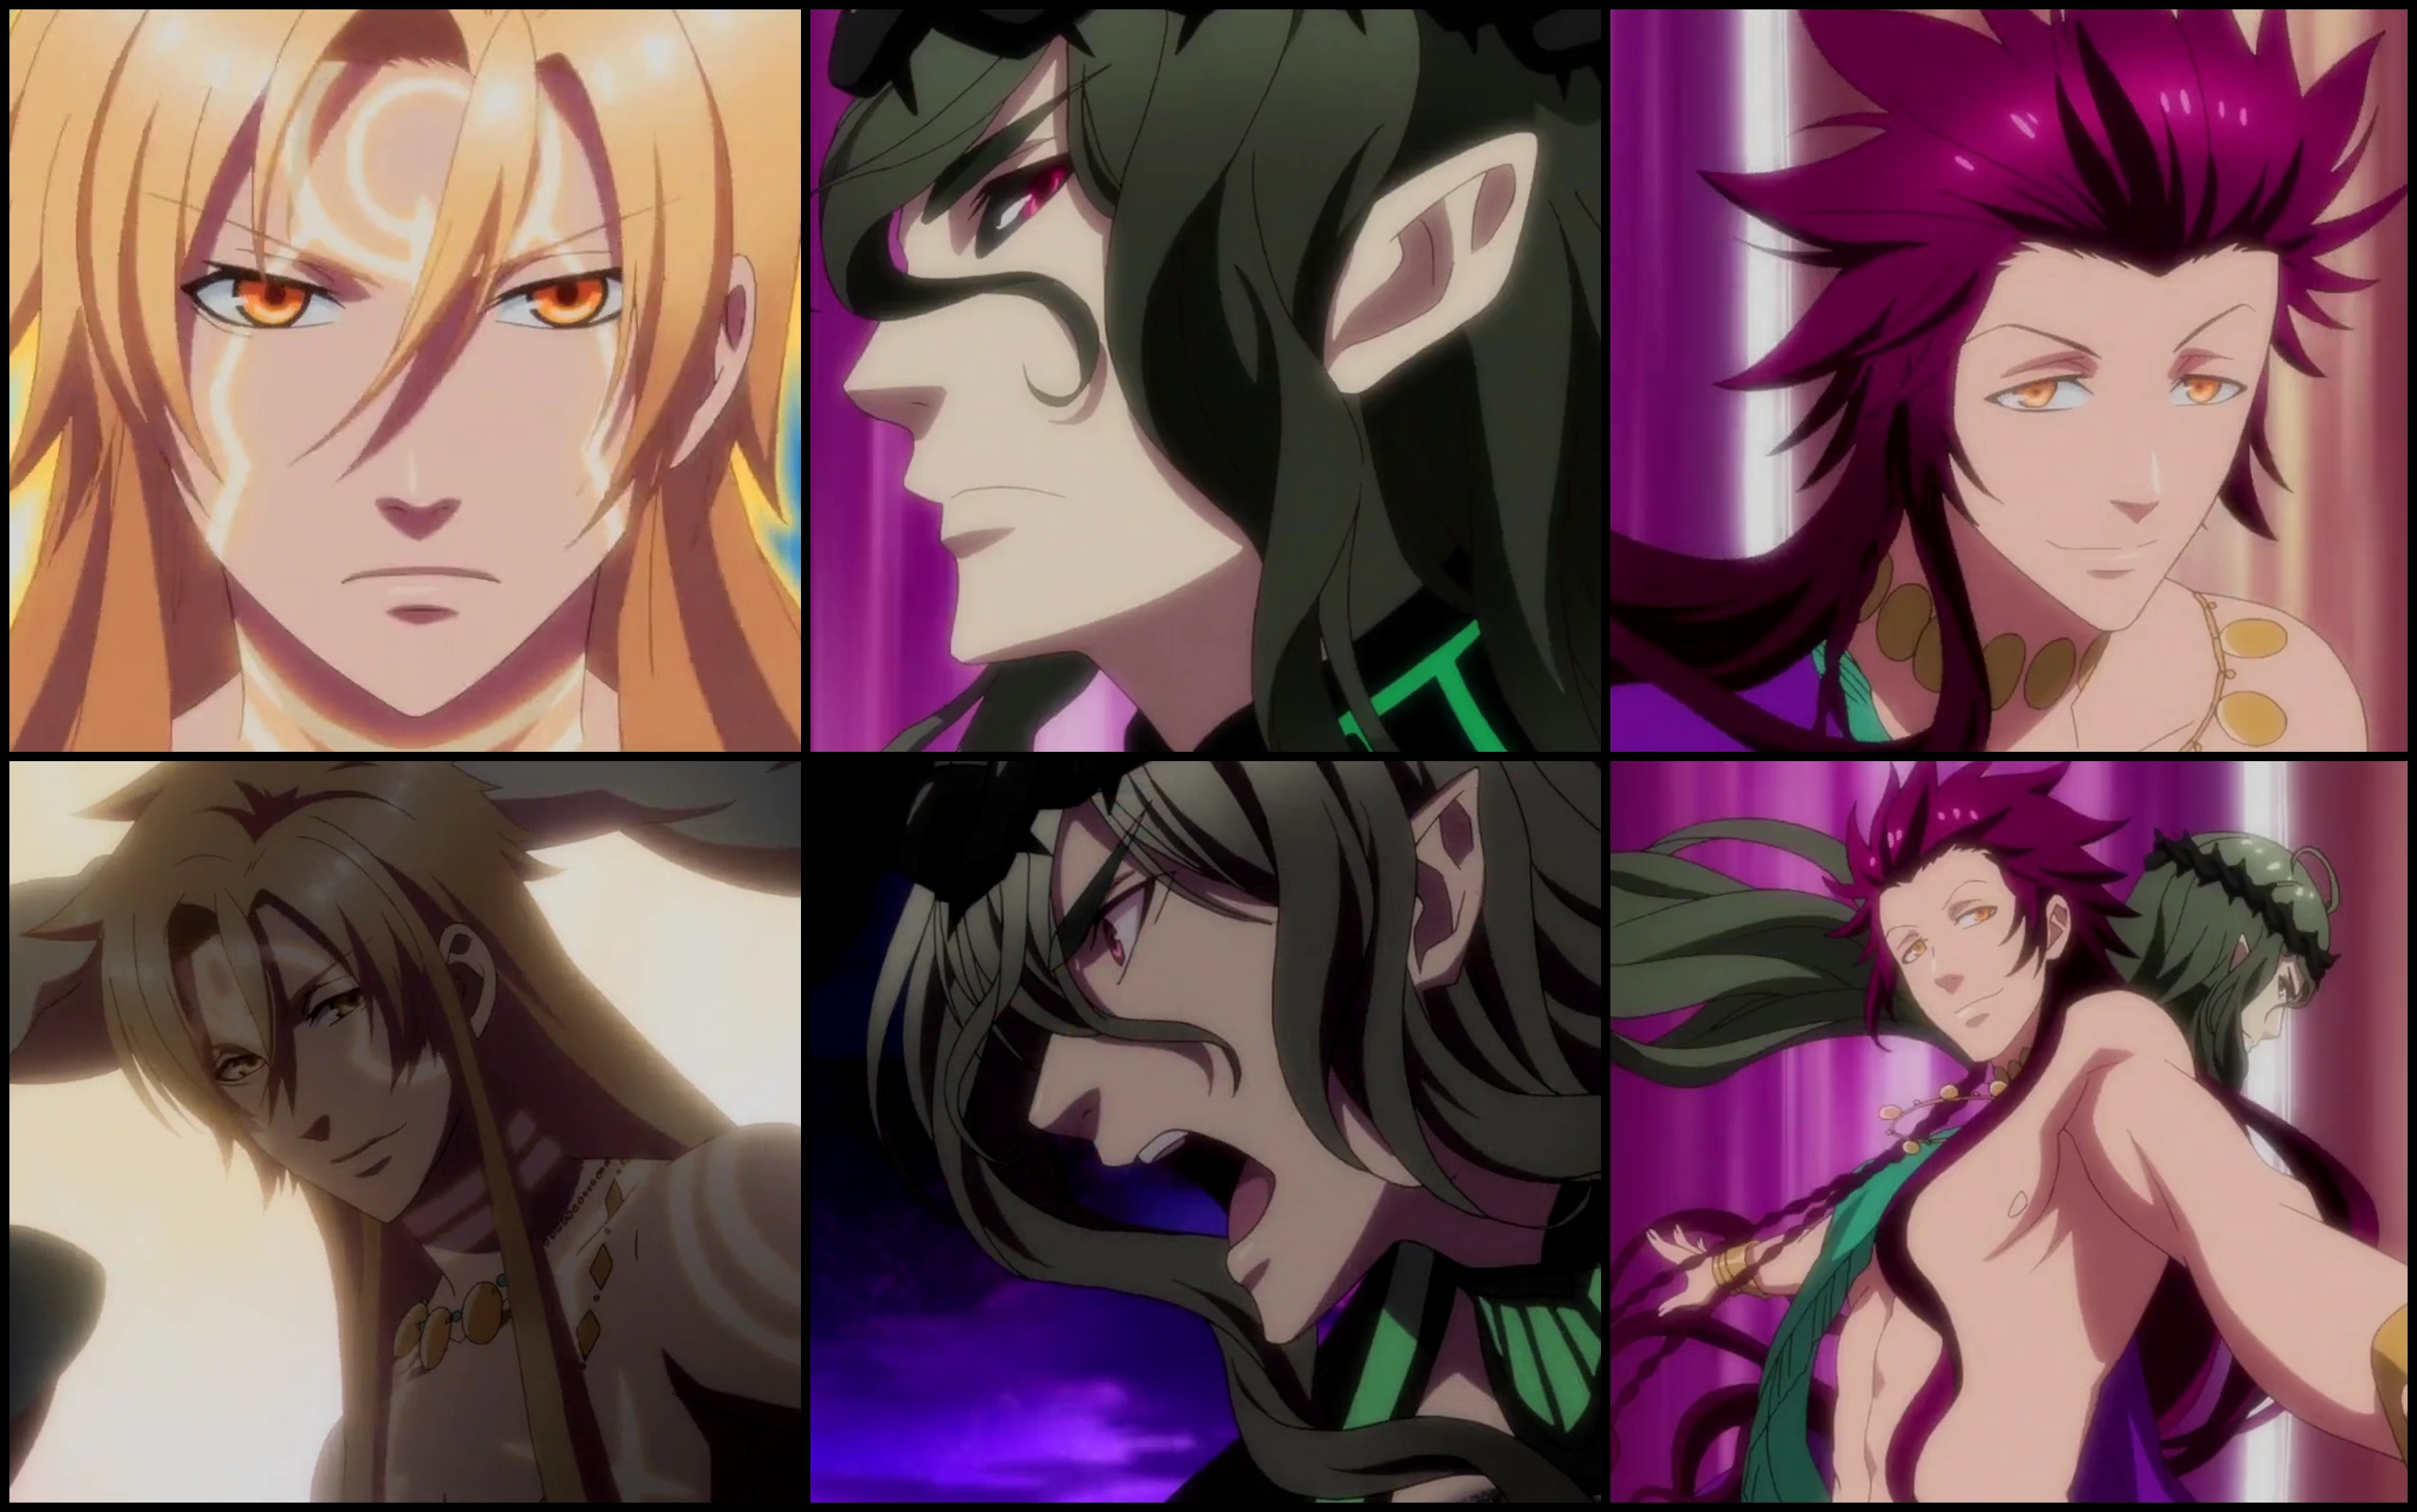 Kamigami no Asobi Wallpaper 5 by ng9 on DeviantArt